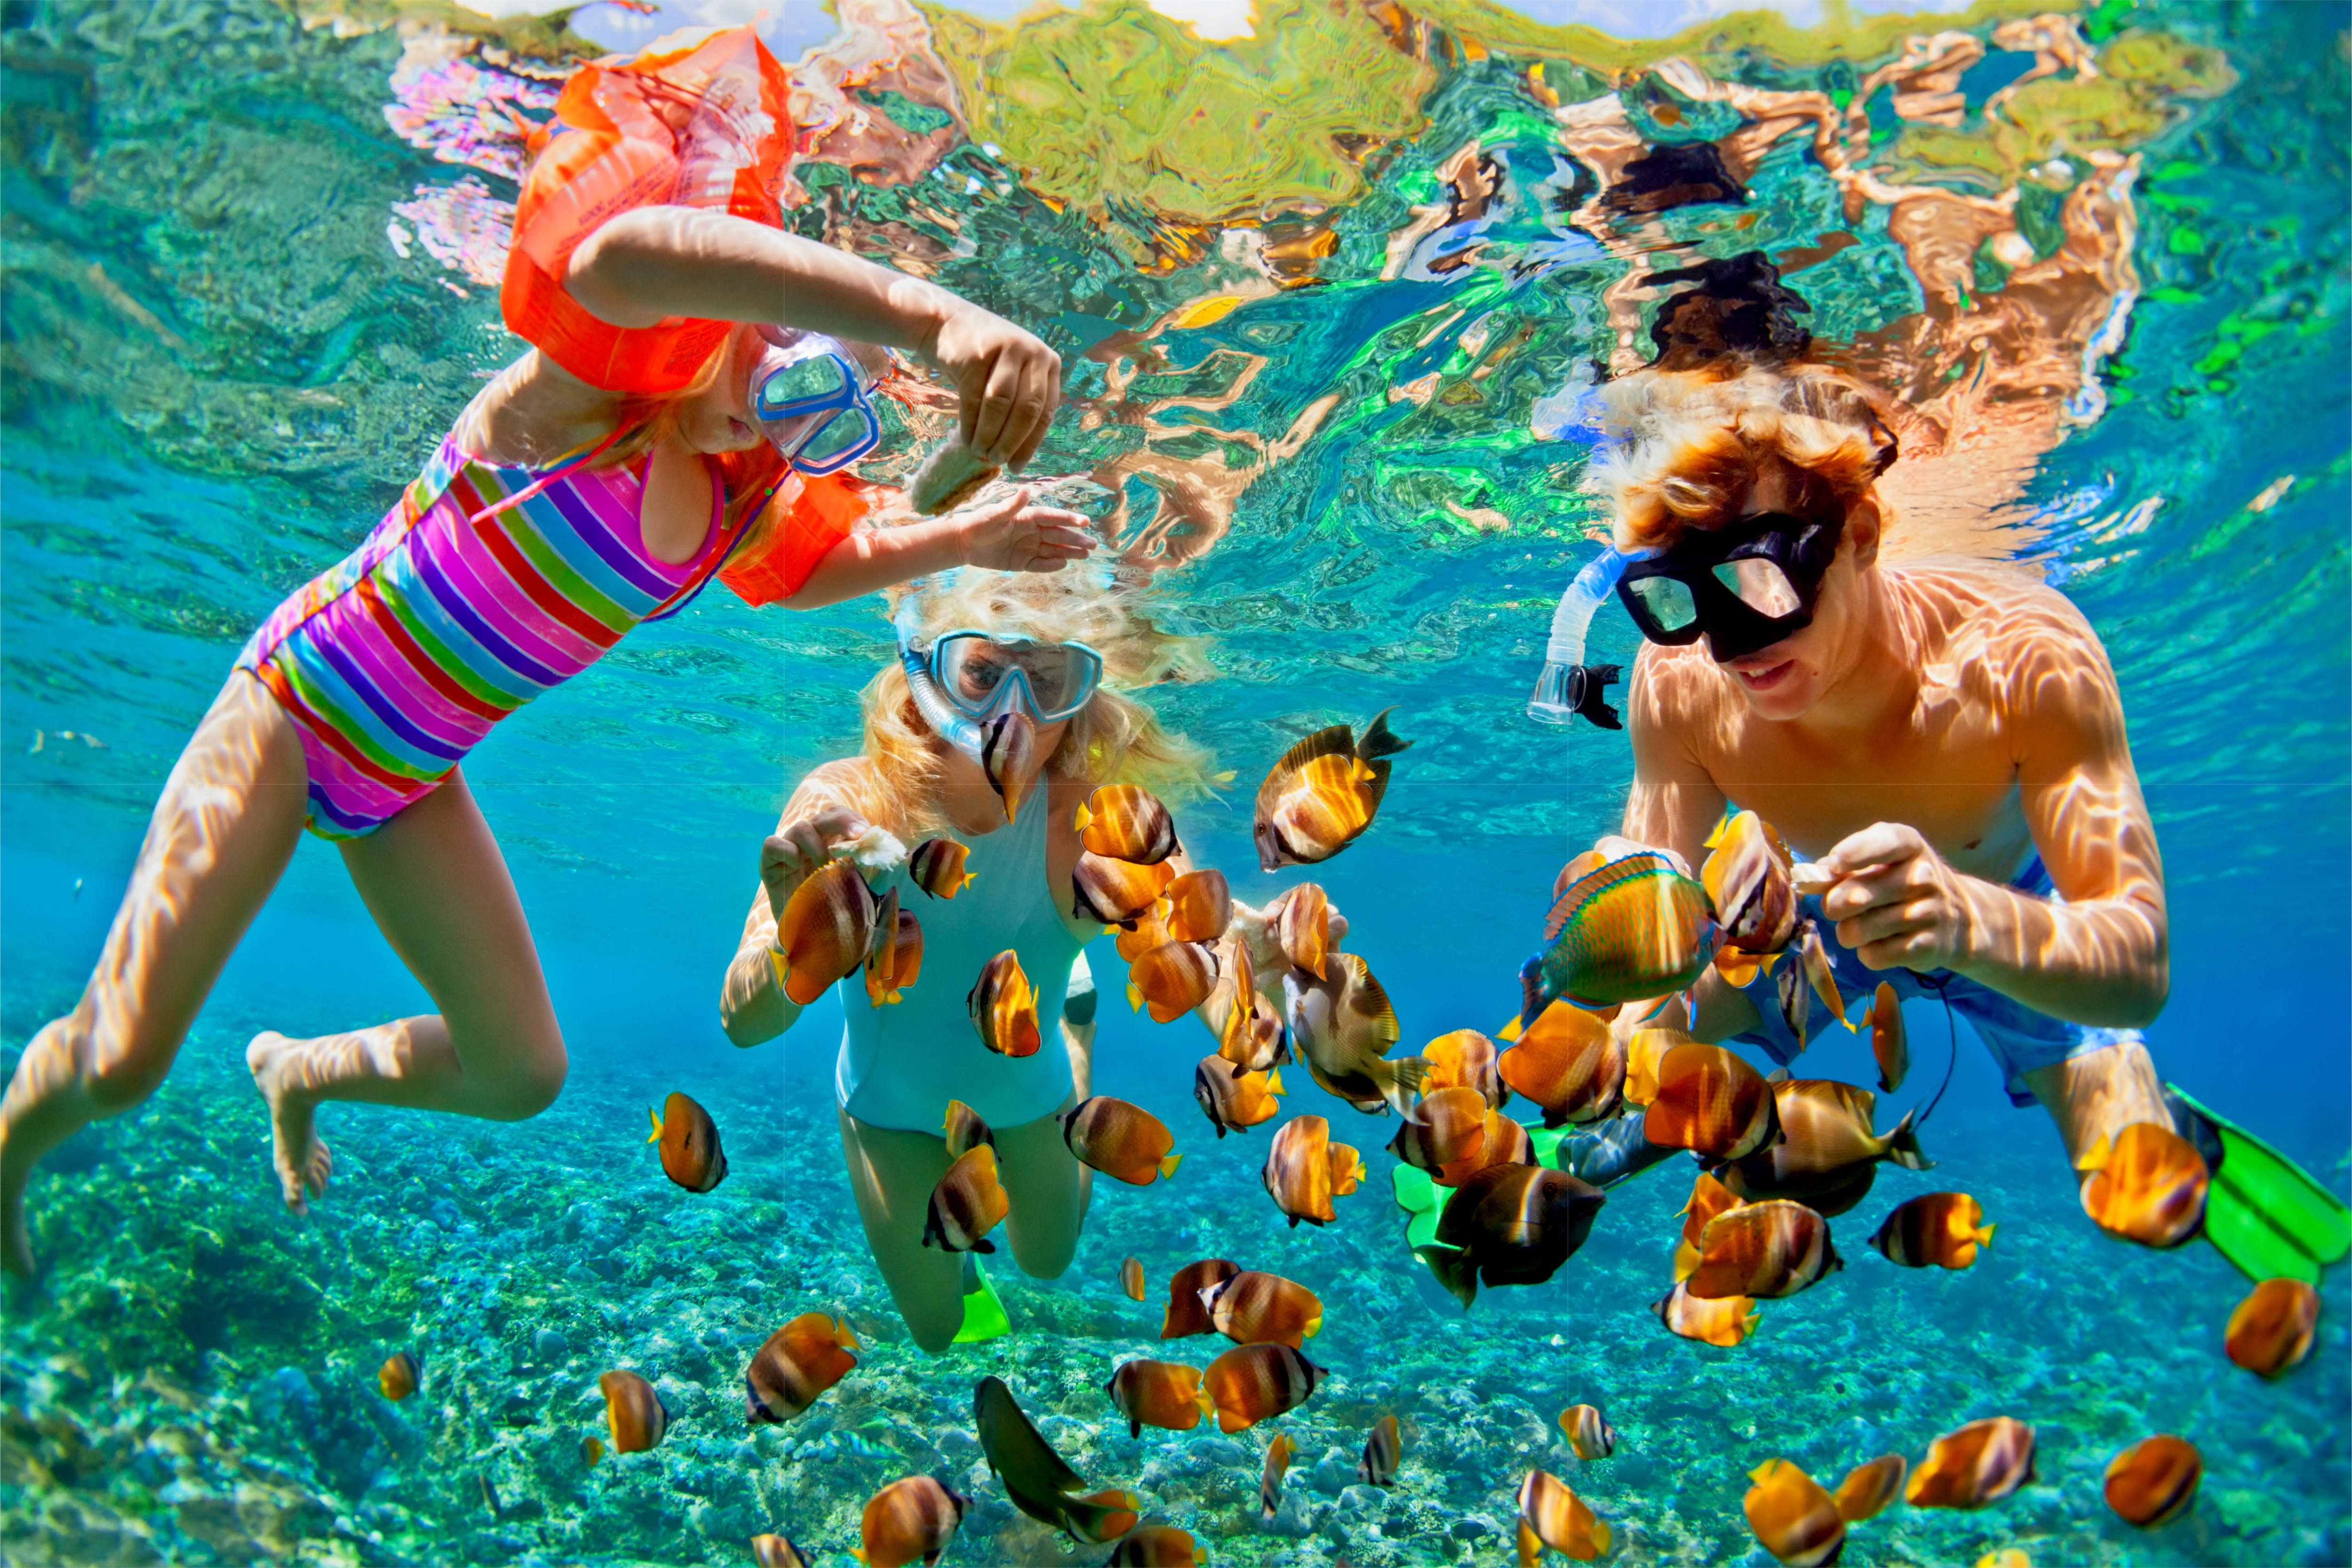 Snorkeling on Roatán is very safe, accessible and can easily enjoyed by any age or skill level.